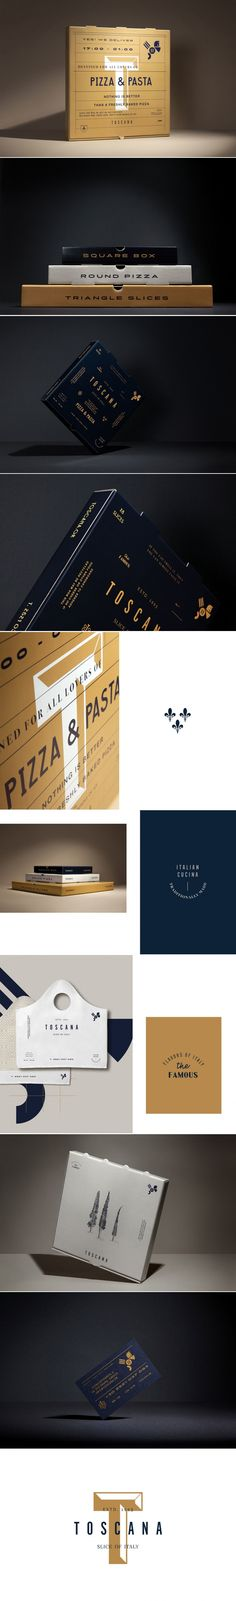 Toscana is a Tasteful and Sophisticated Take on Pizza Packaging — The Dieline | Packaging & Branding Design & Innovation News